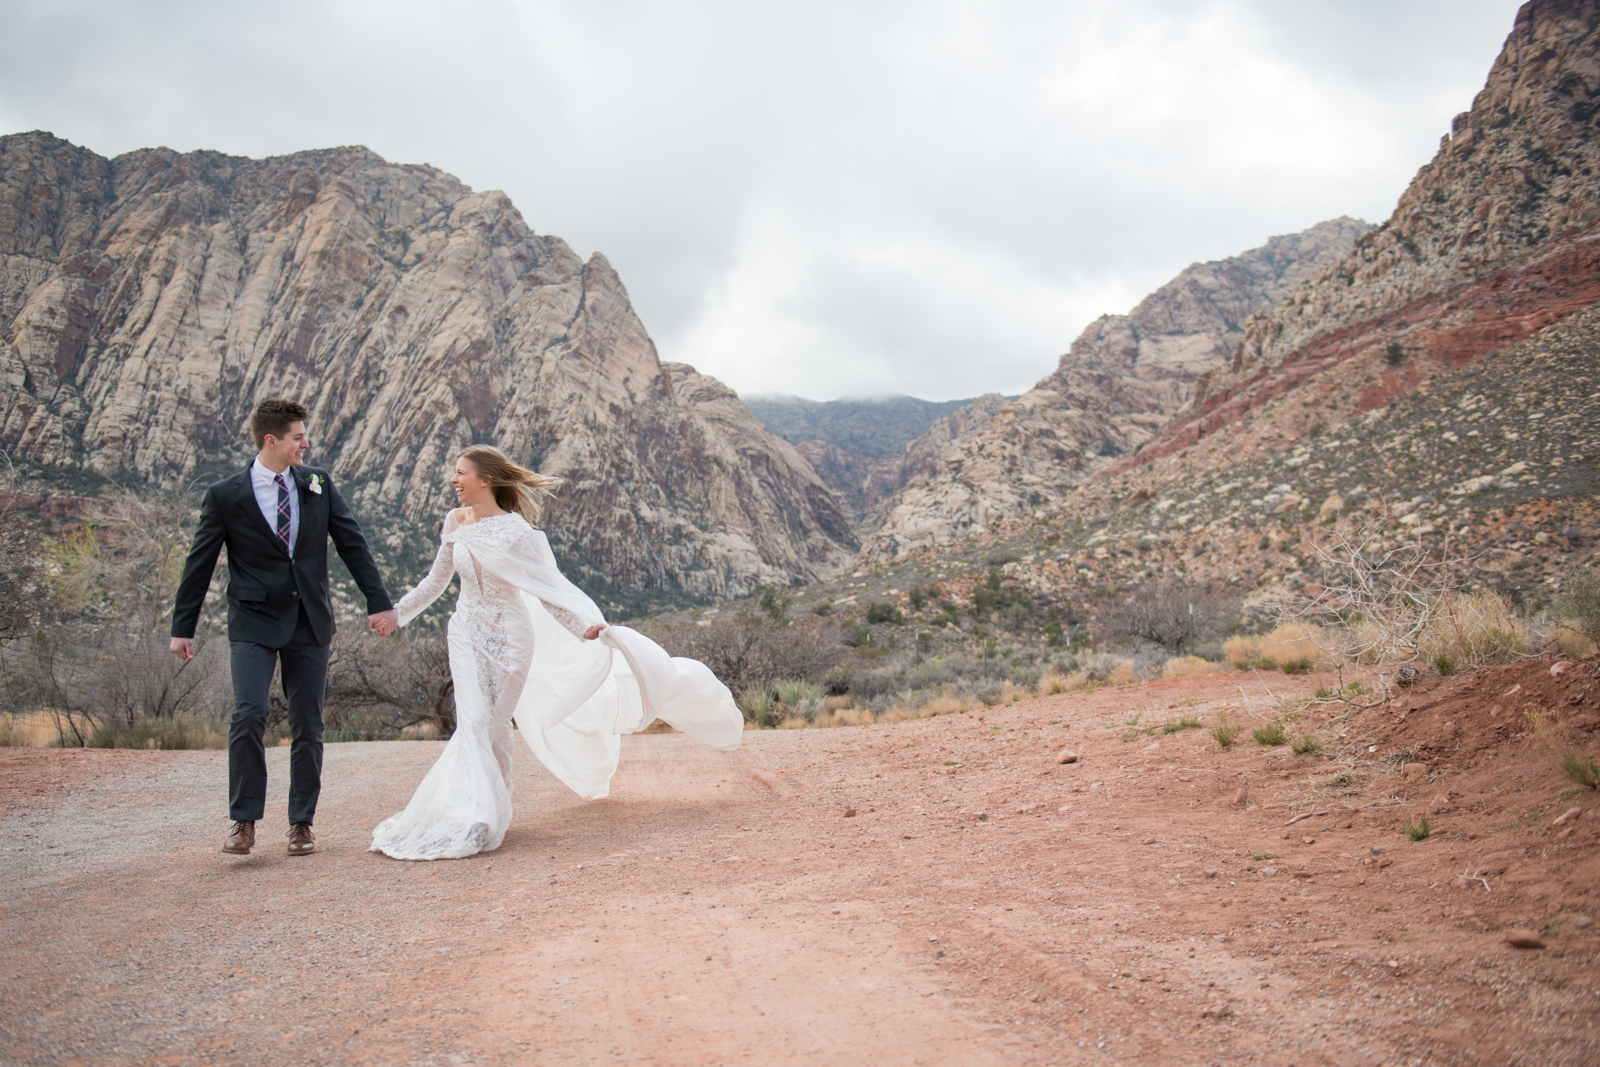 Desert-Wedding-Destination-Photography-7.jpg